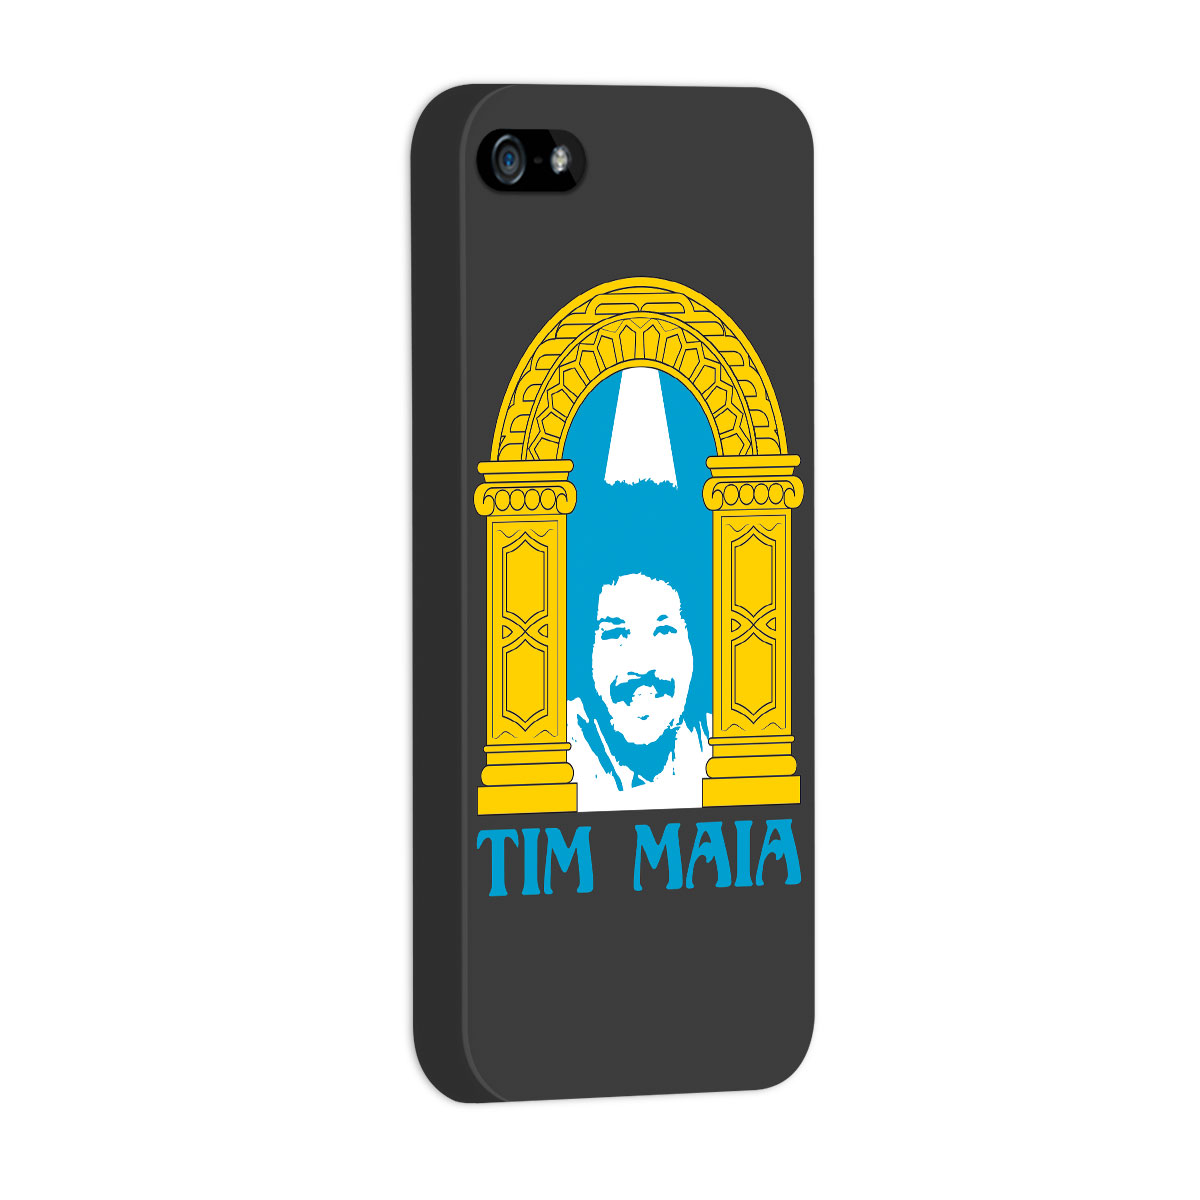 Capa de iPhone 5/5S Tim Maia Racional 2